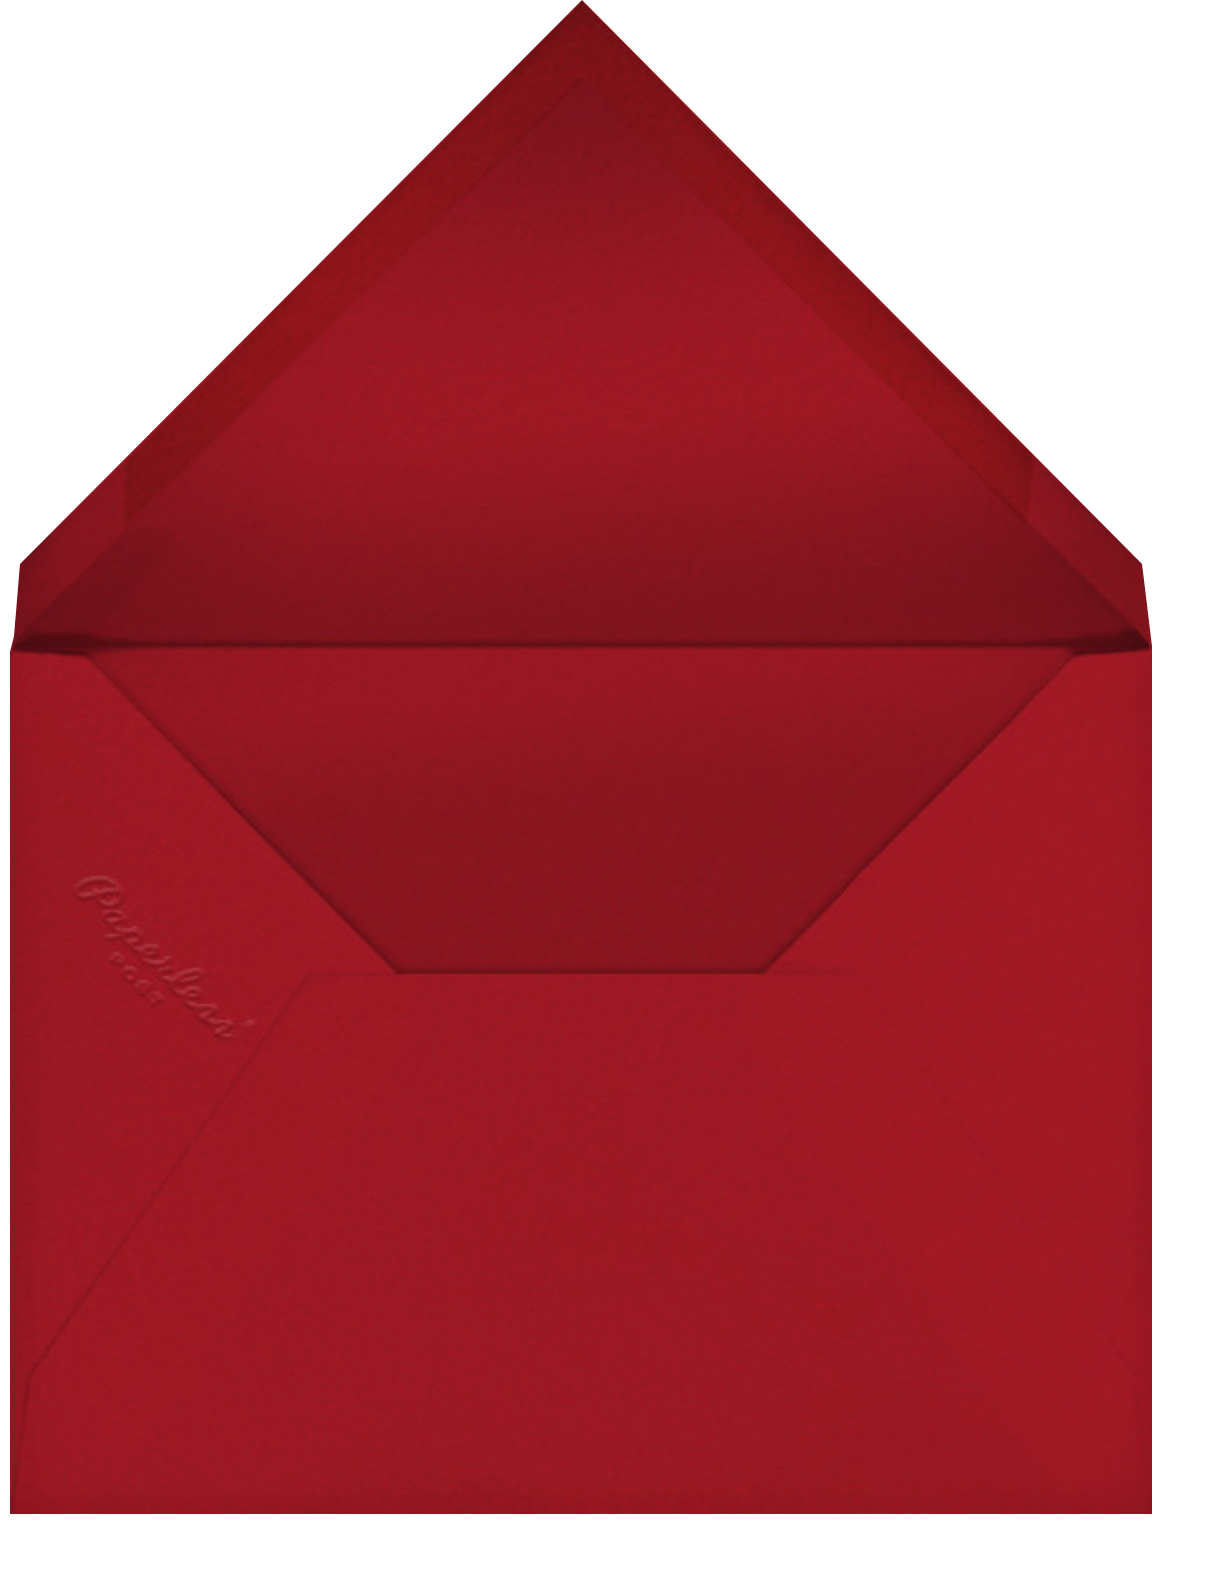 Triple Hearts - Paperless Post - Anniversary - envelope back